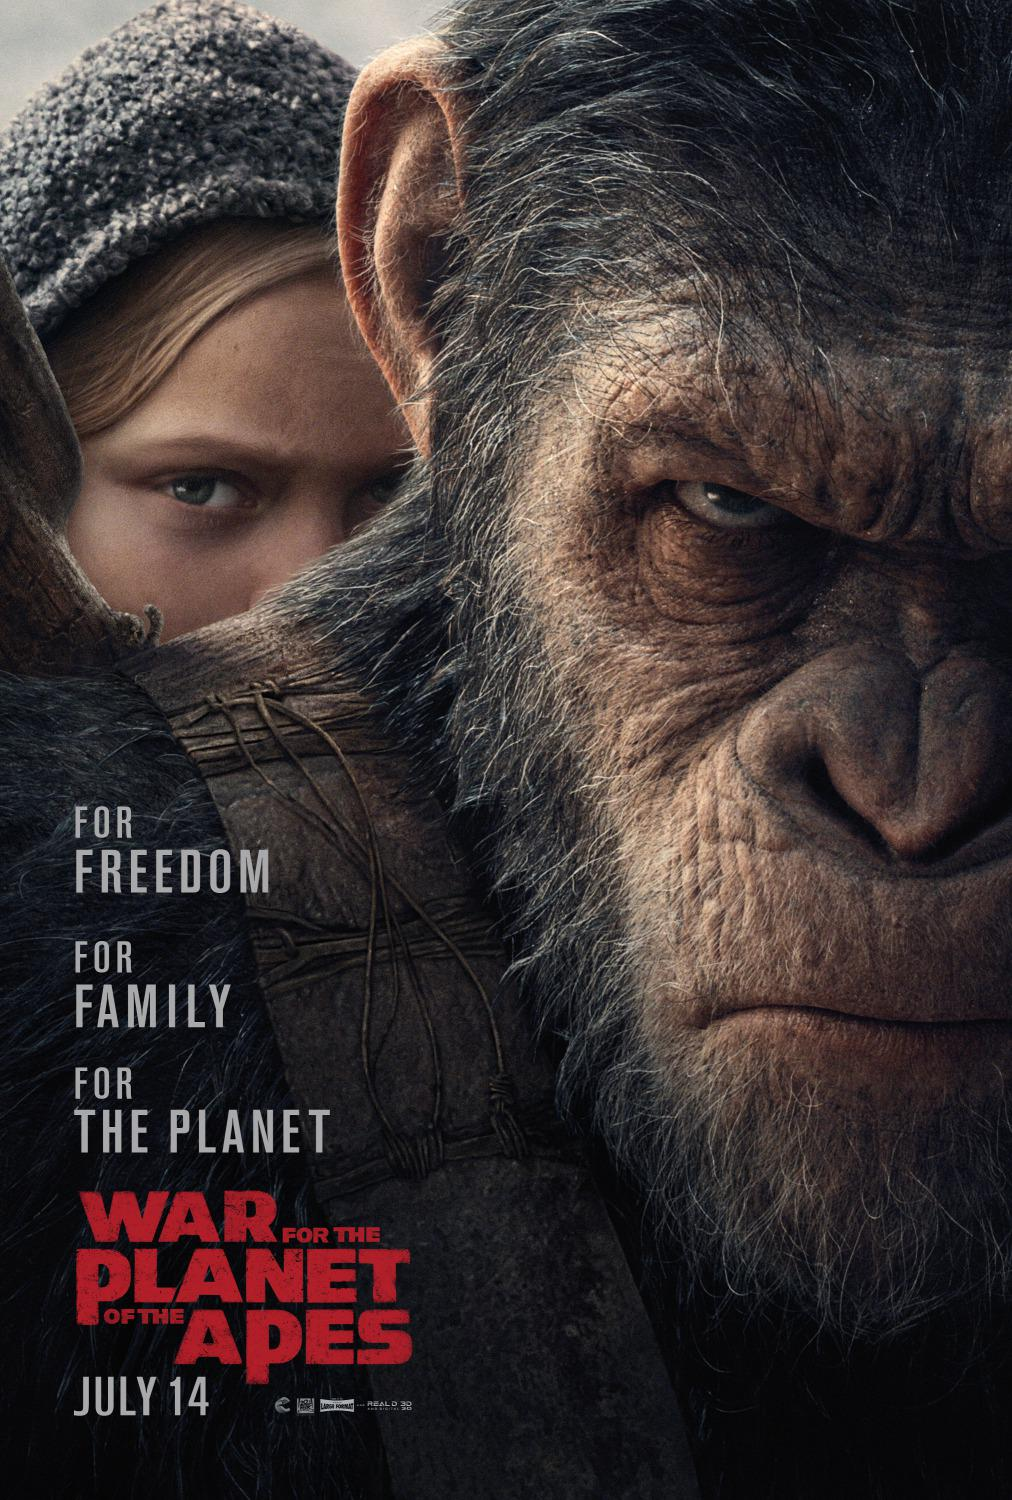 Apes 9 - The War - Il Pianeta delle Scimmie - War for the planet of the Apes (2017)